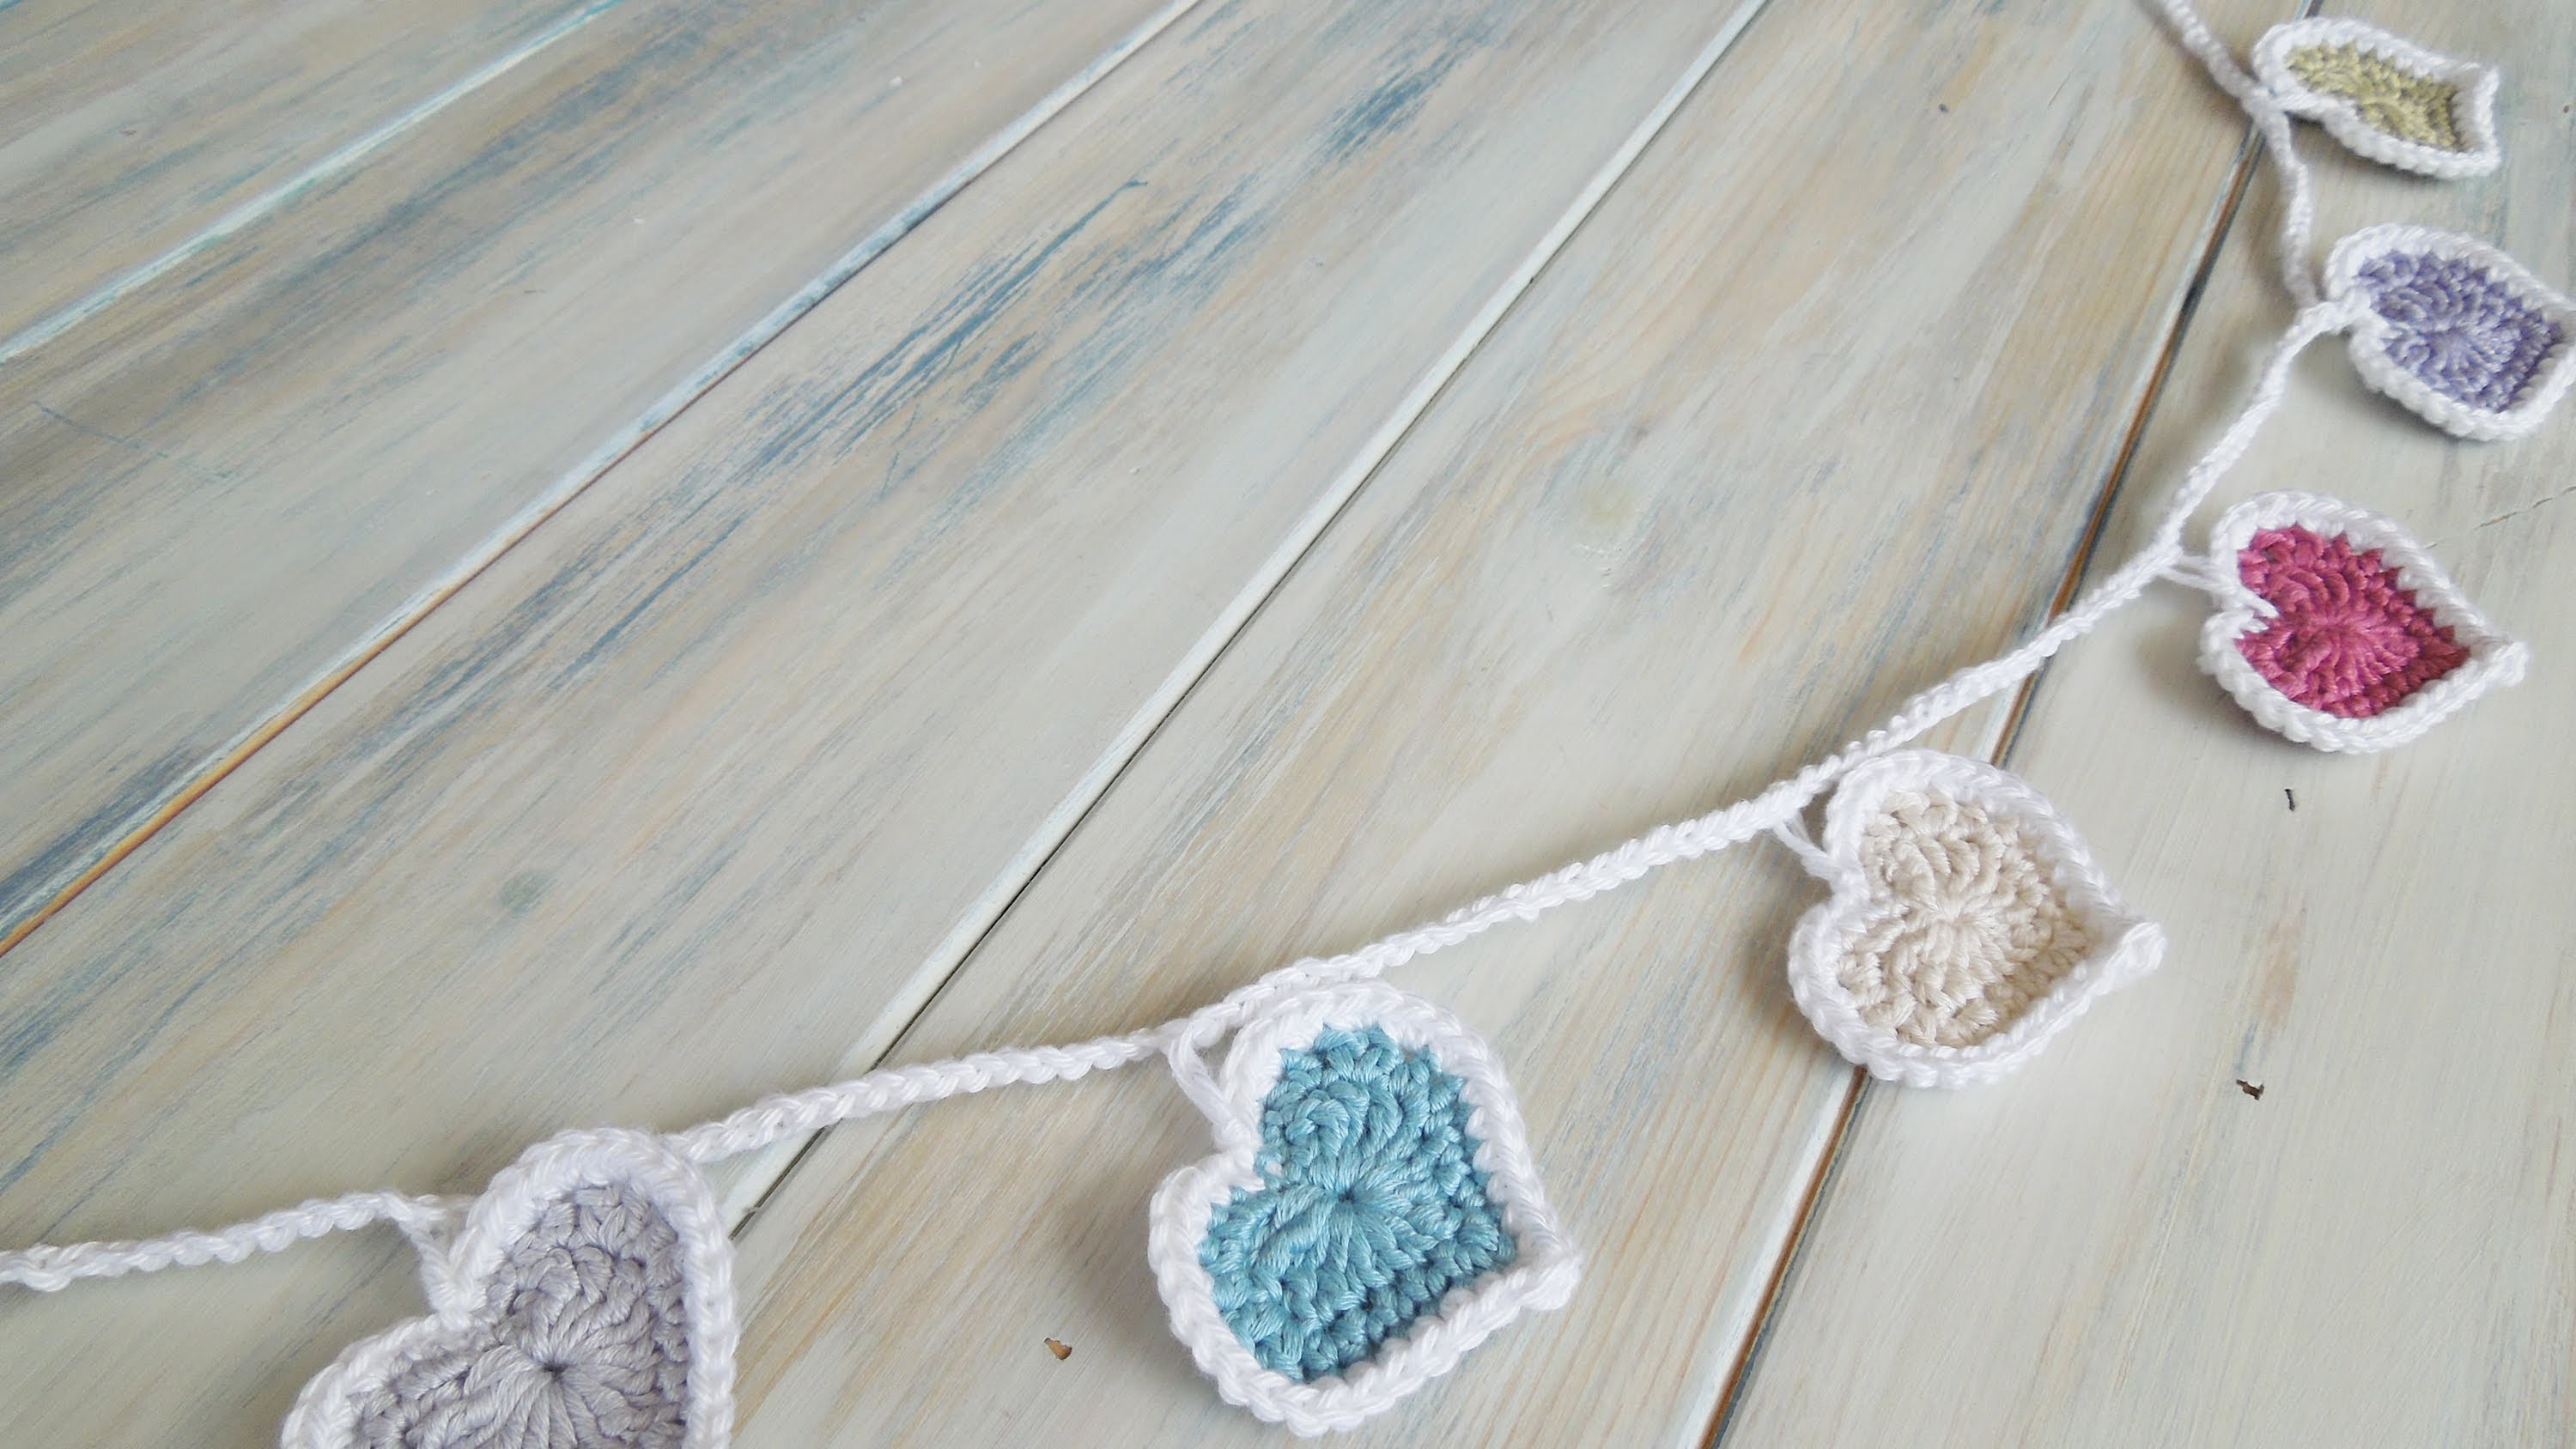 (Crochet) How To - Crochet Heart Bunting